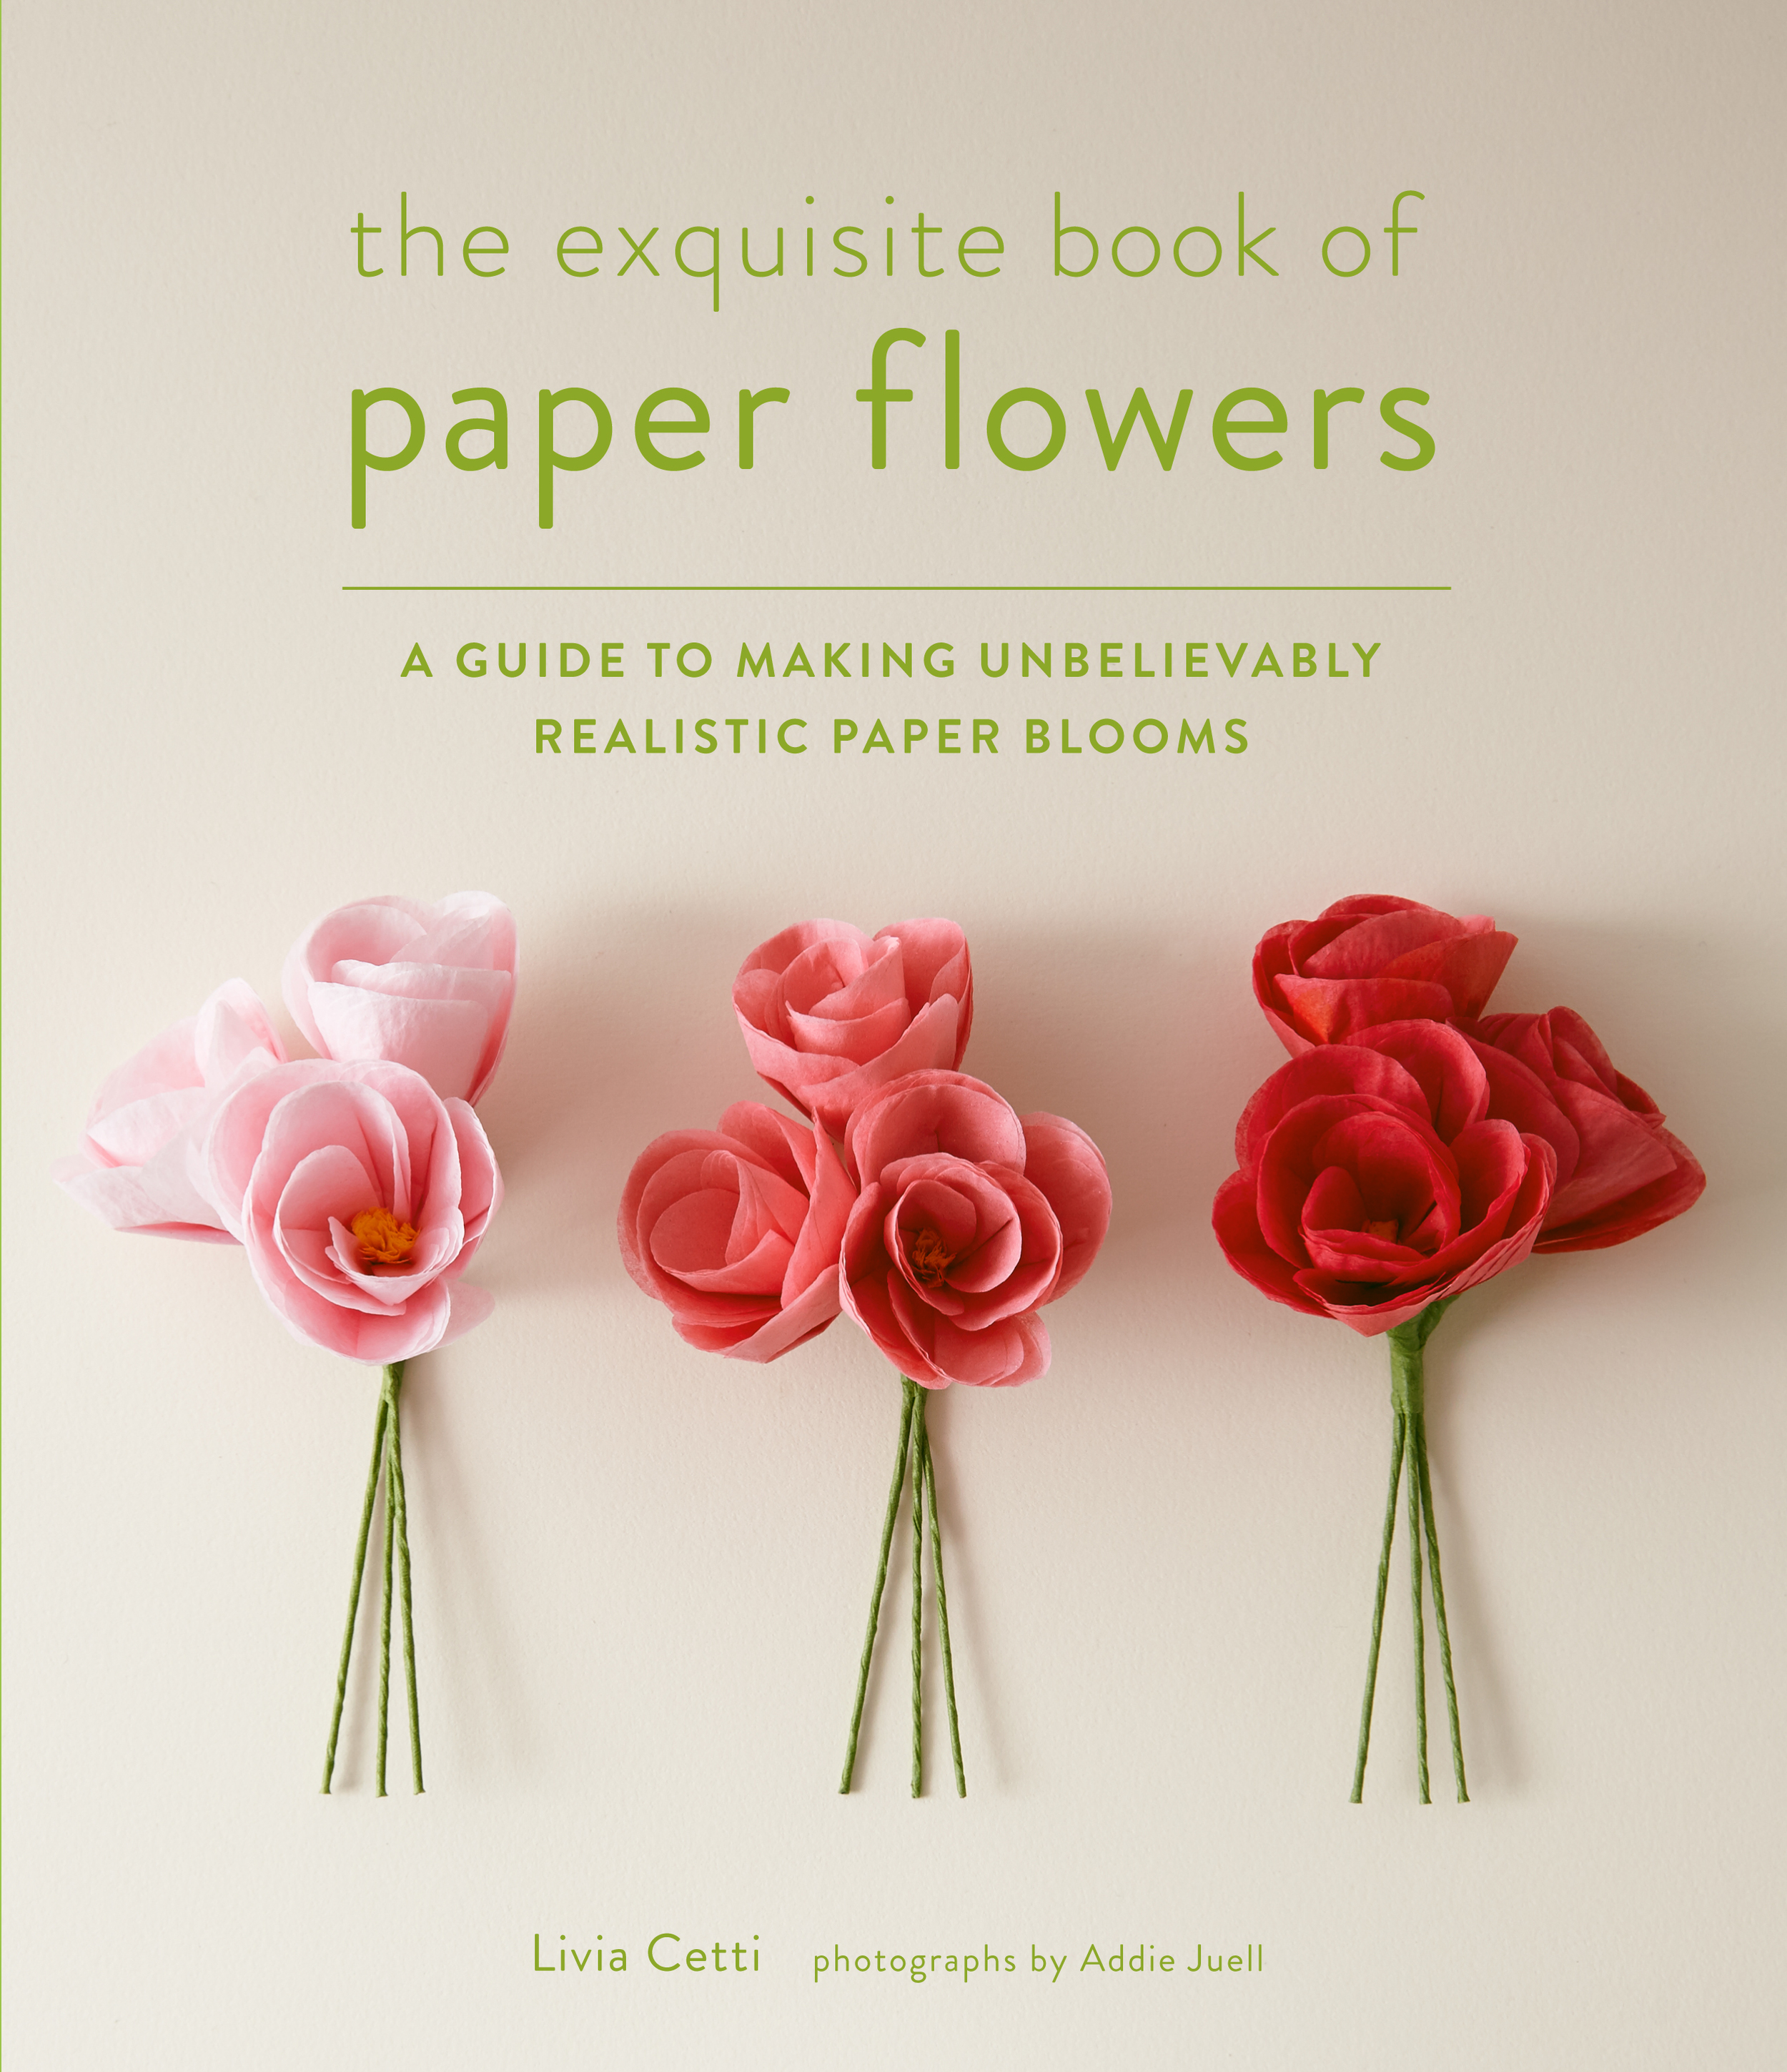 ExquisiteBookPaperFlower91003J.jpg